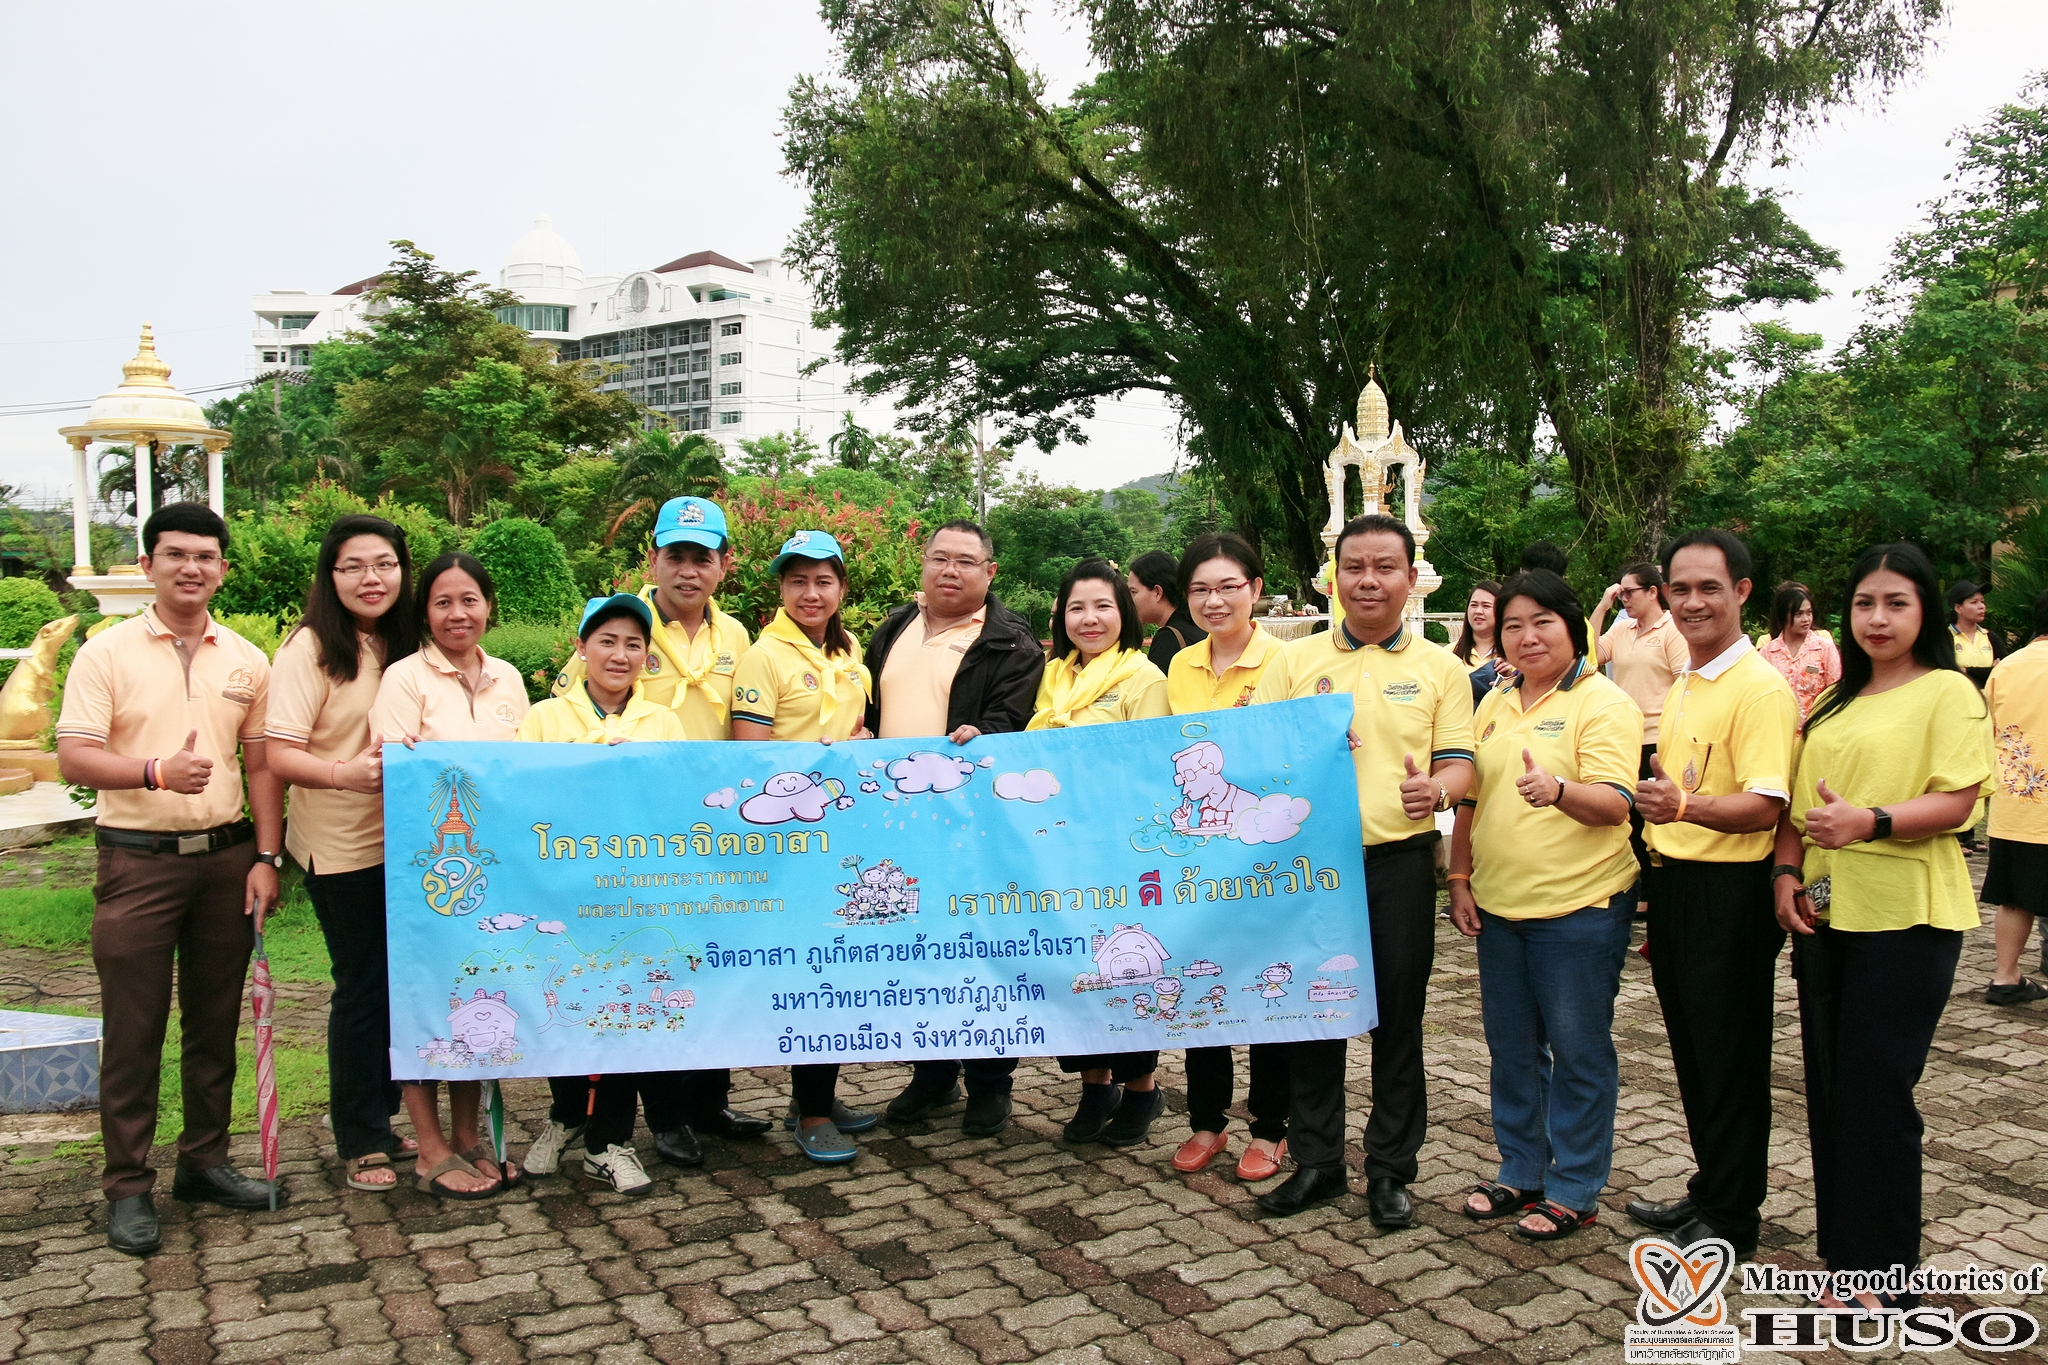 HUSO PKRU Keep Phuket Clean by our hands and Hearts 5 July 2018 4